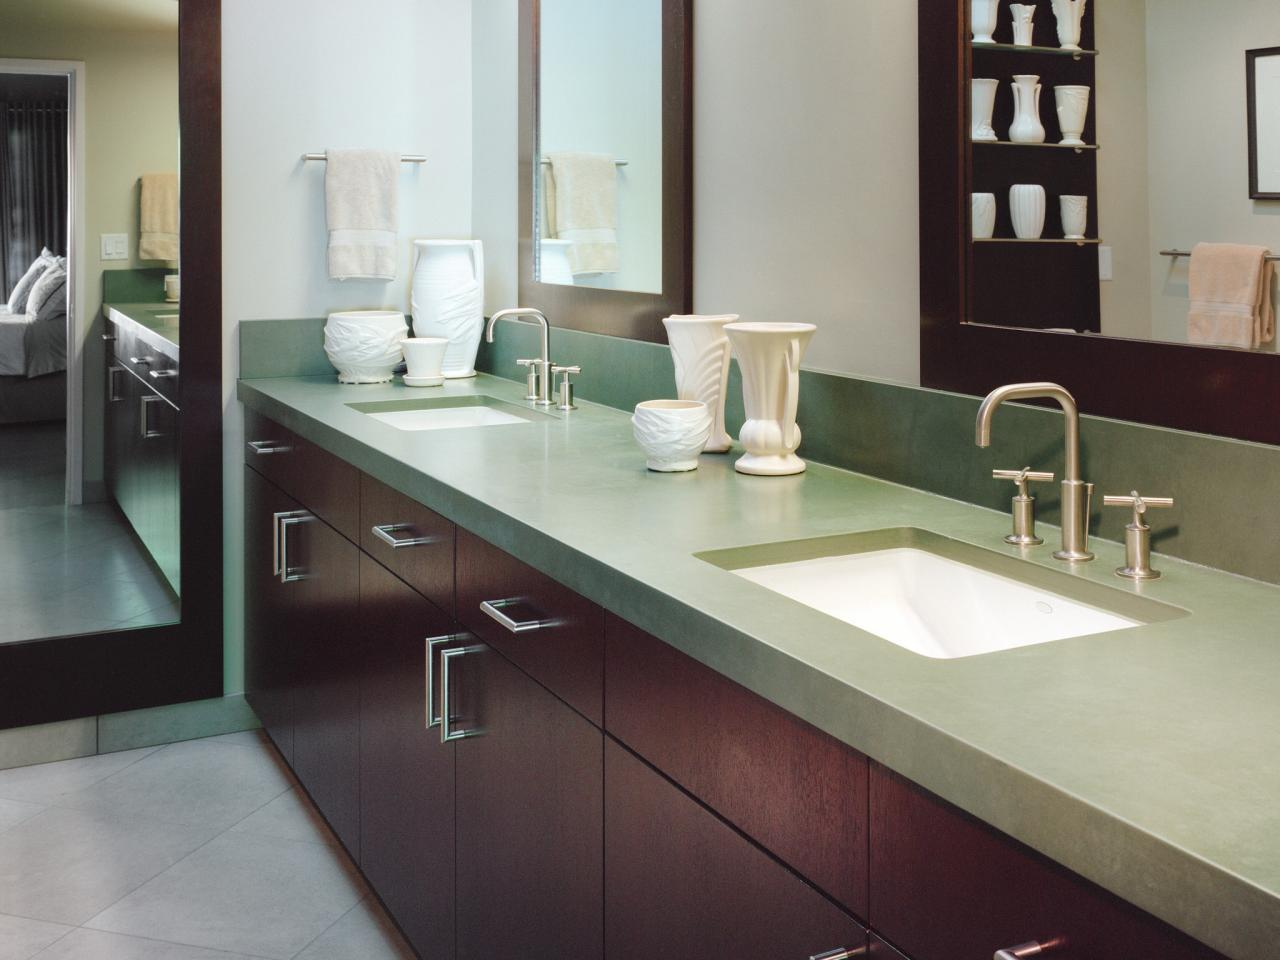 Top 5 Quartz Premier Slabs Colours For Bathroom Countertops